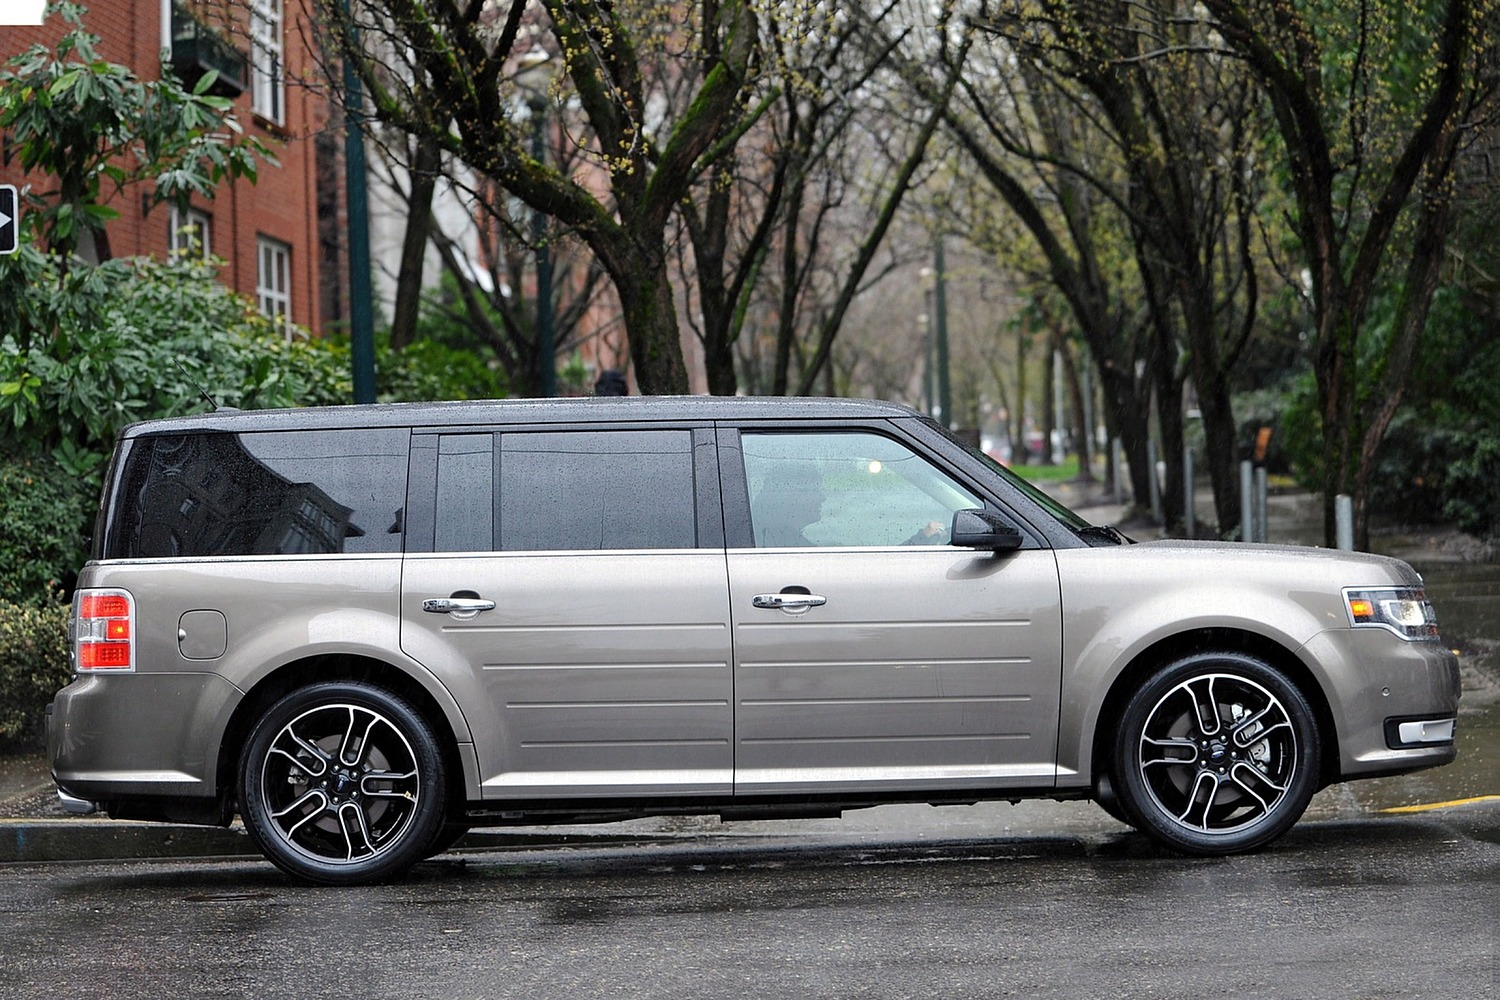 2017 Ford Flex Limited Wagon Exterior. Options Shown.